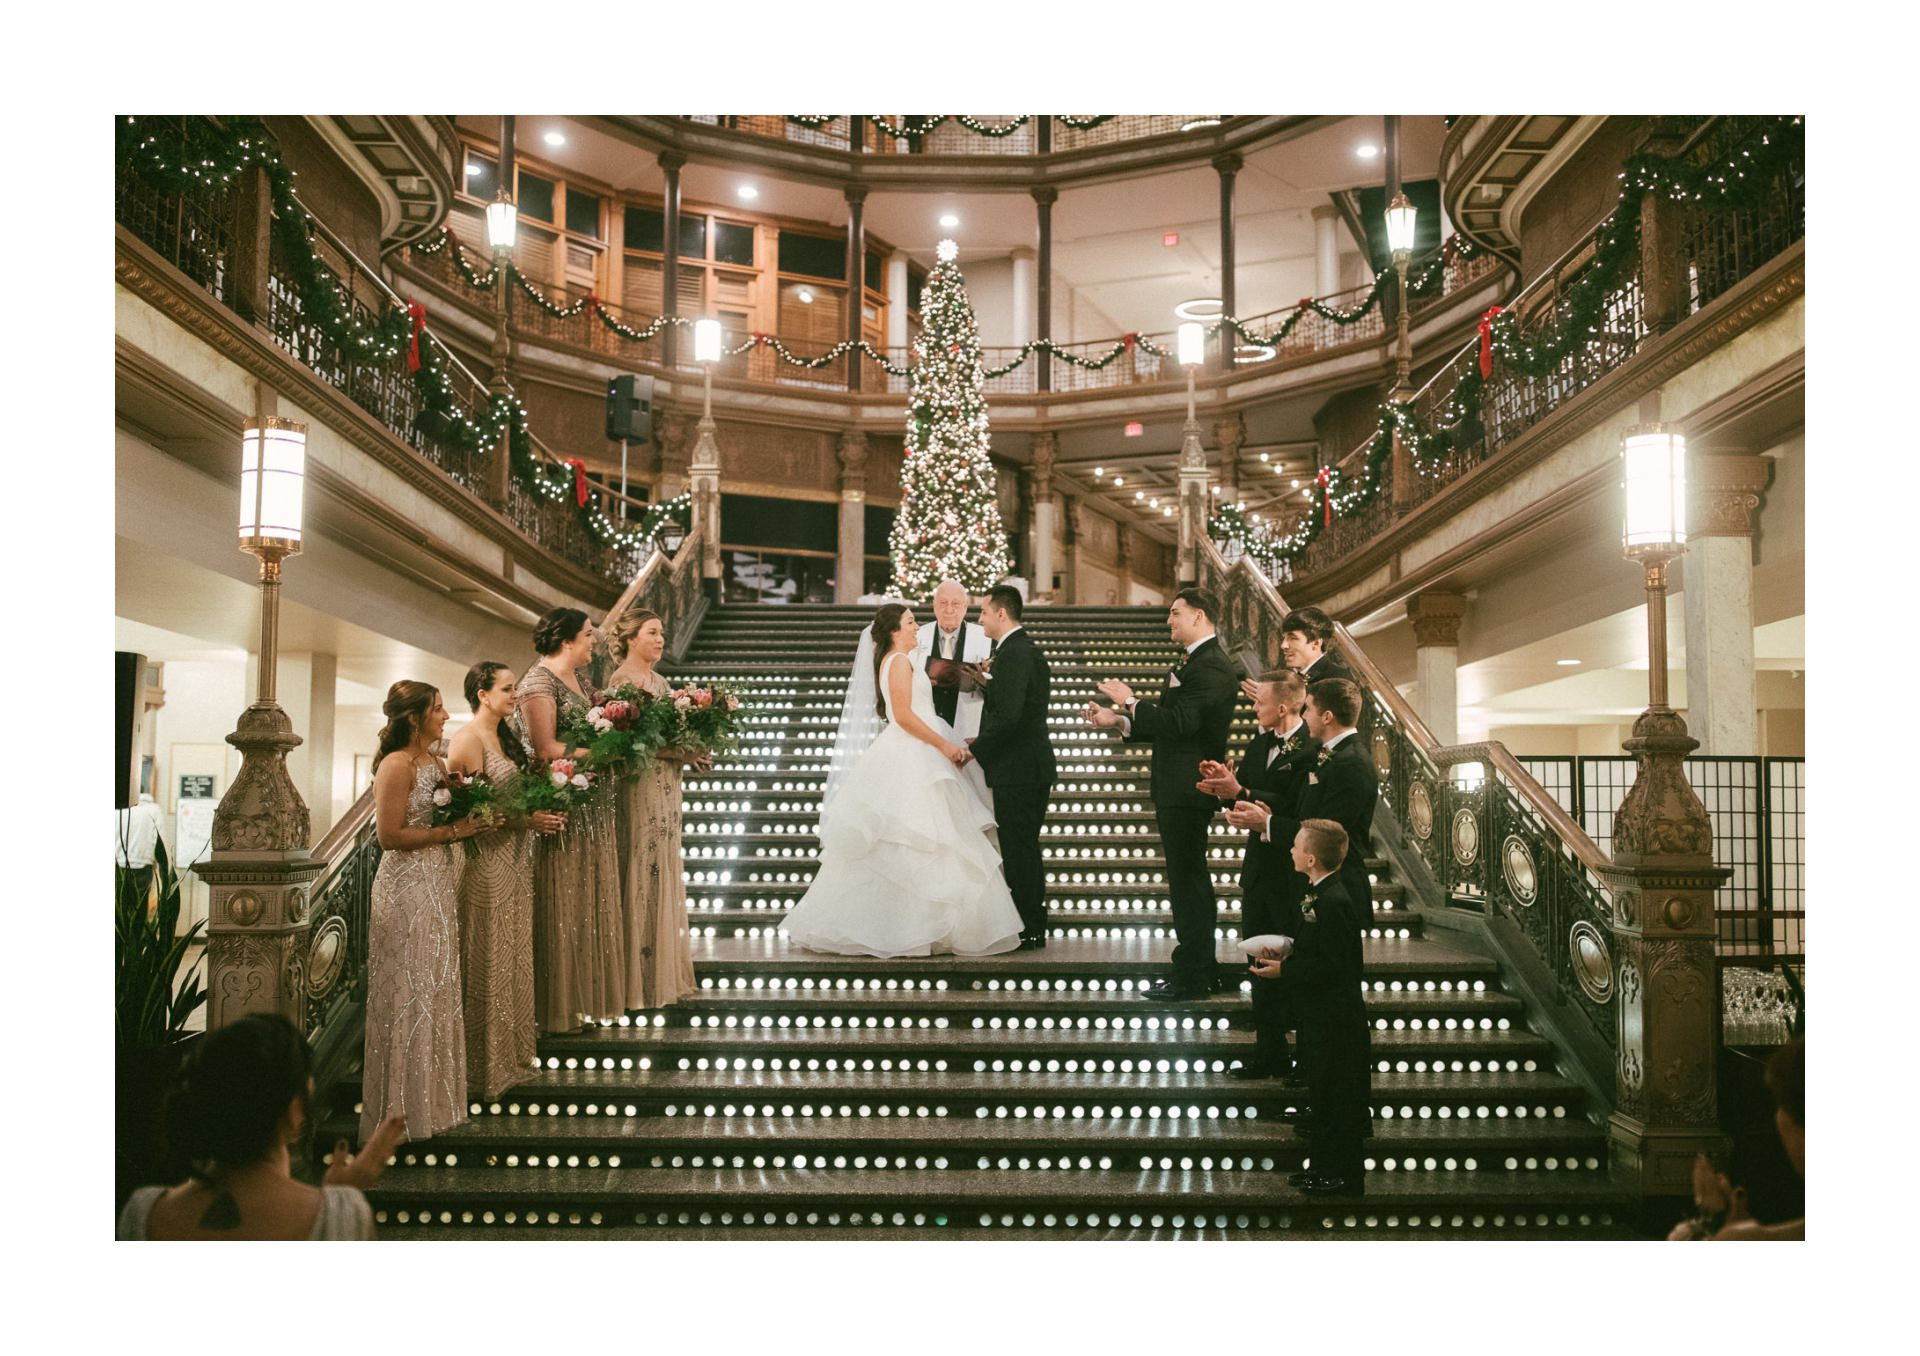 Hyatt Old Arcade Wedding Photographer in Cleveland 2 5.jpg